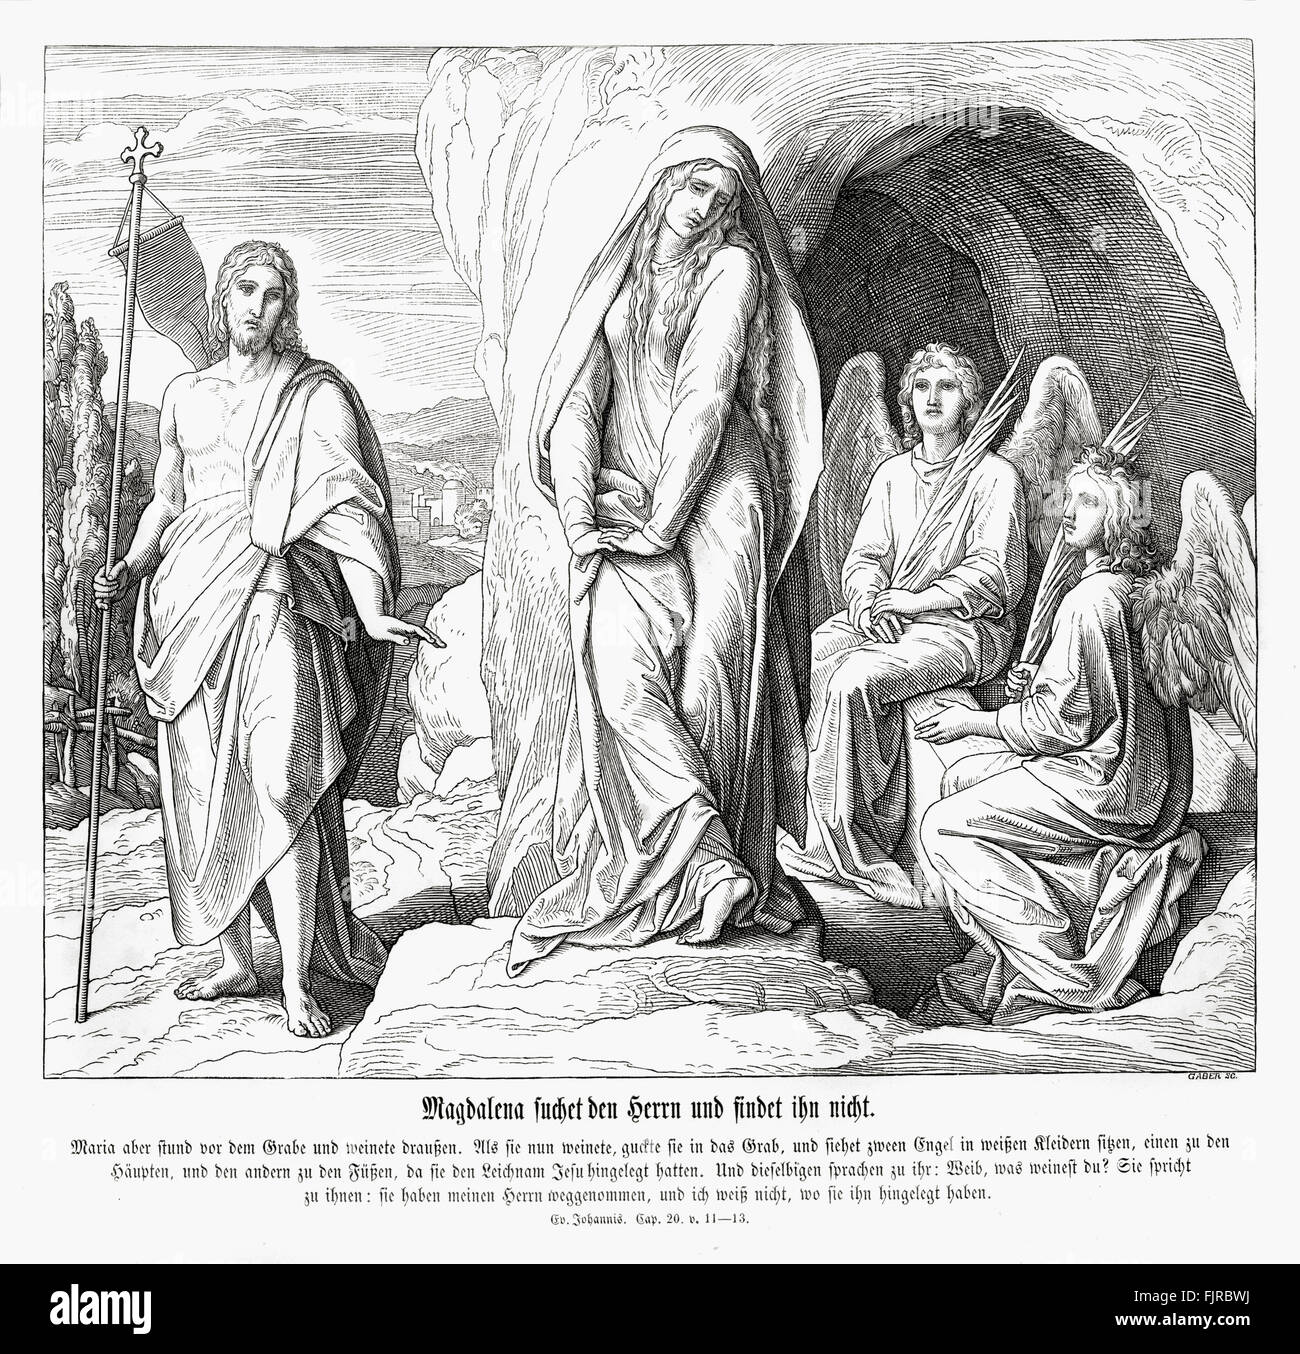 Mary Magdalene at Jesus' tomb, Gospel of John chapter XX verses 11 - 13 'But Mary stood without at the sepulchre - Stock Image